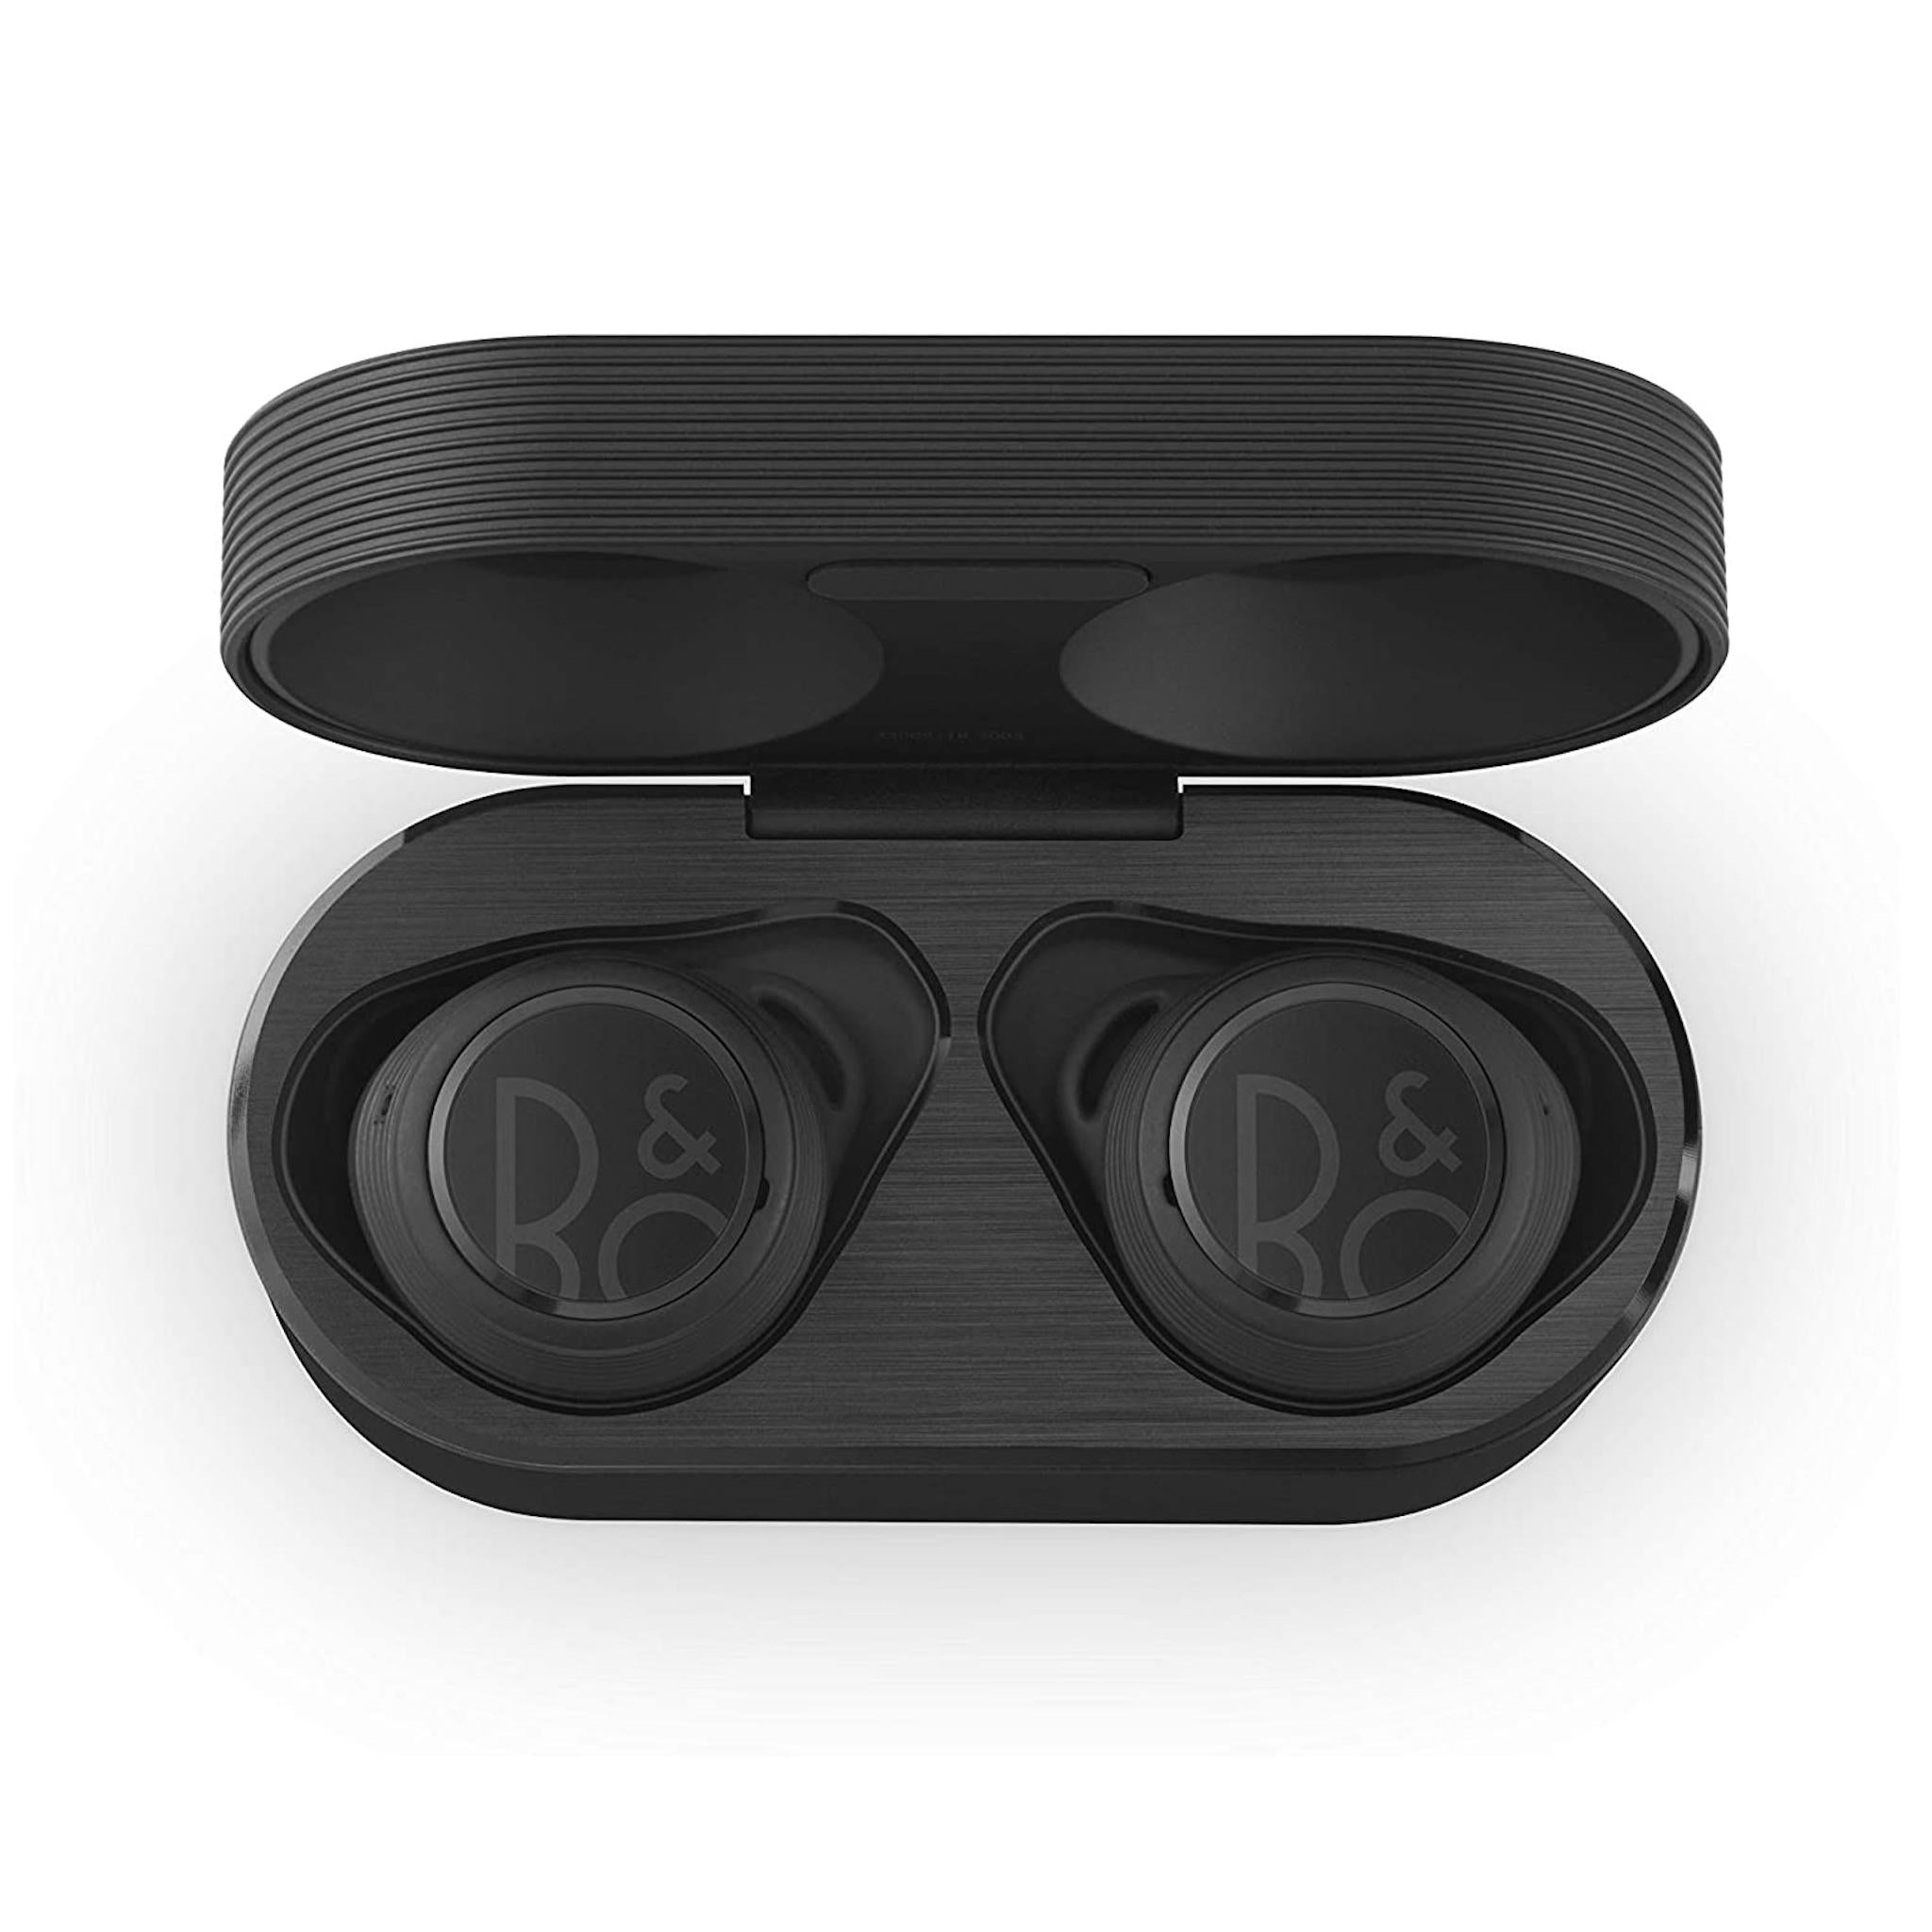 Bang & Olufsen - Beoplay E8 Sport - True Wireless Earbuds, Bang & Olufsen, True Wireless Earphones - AVStore.in